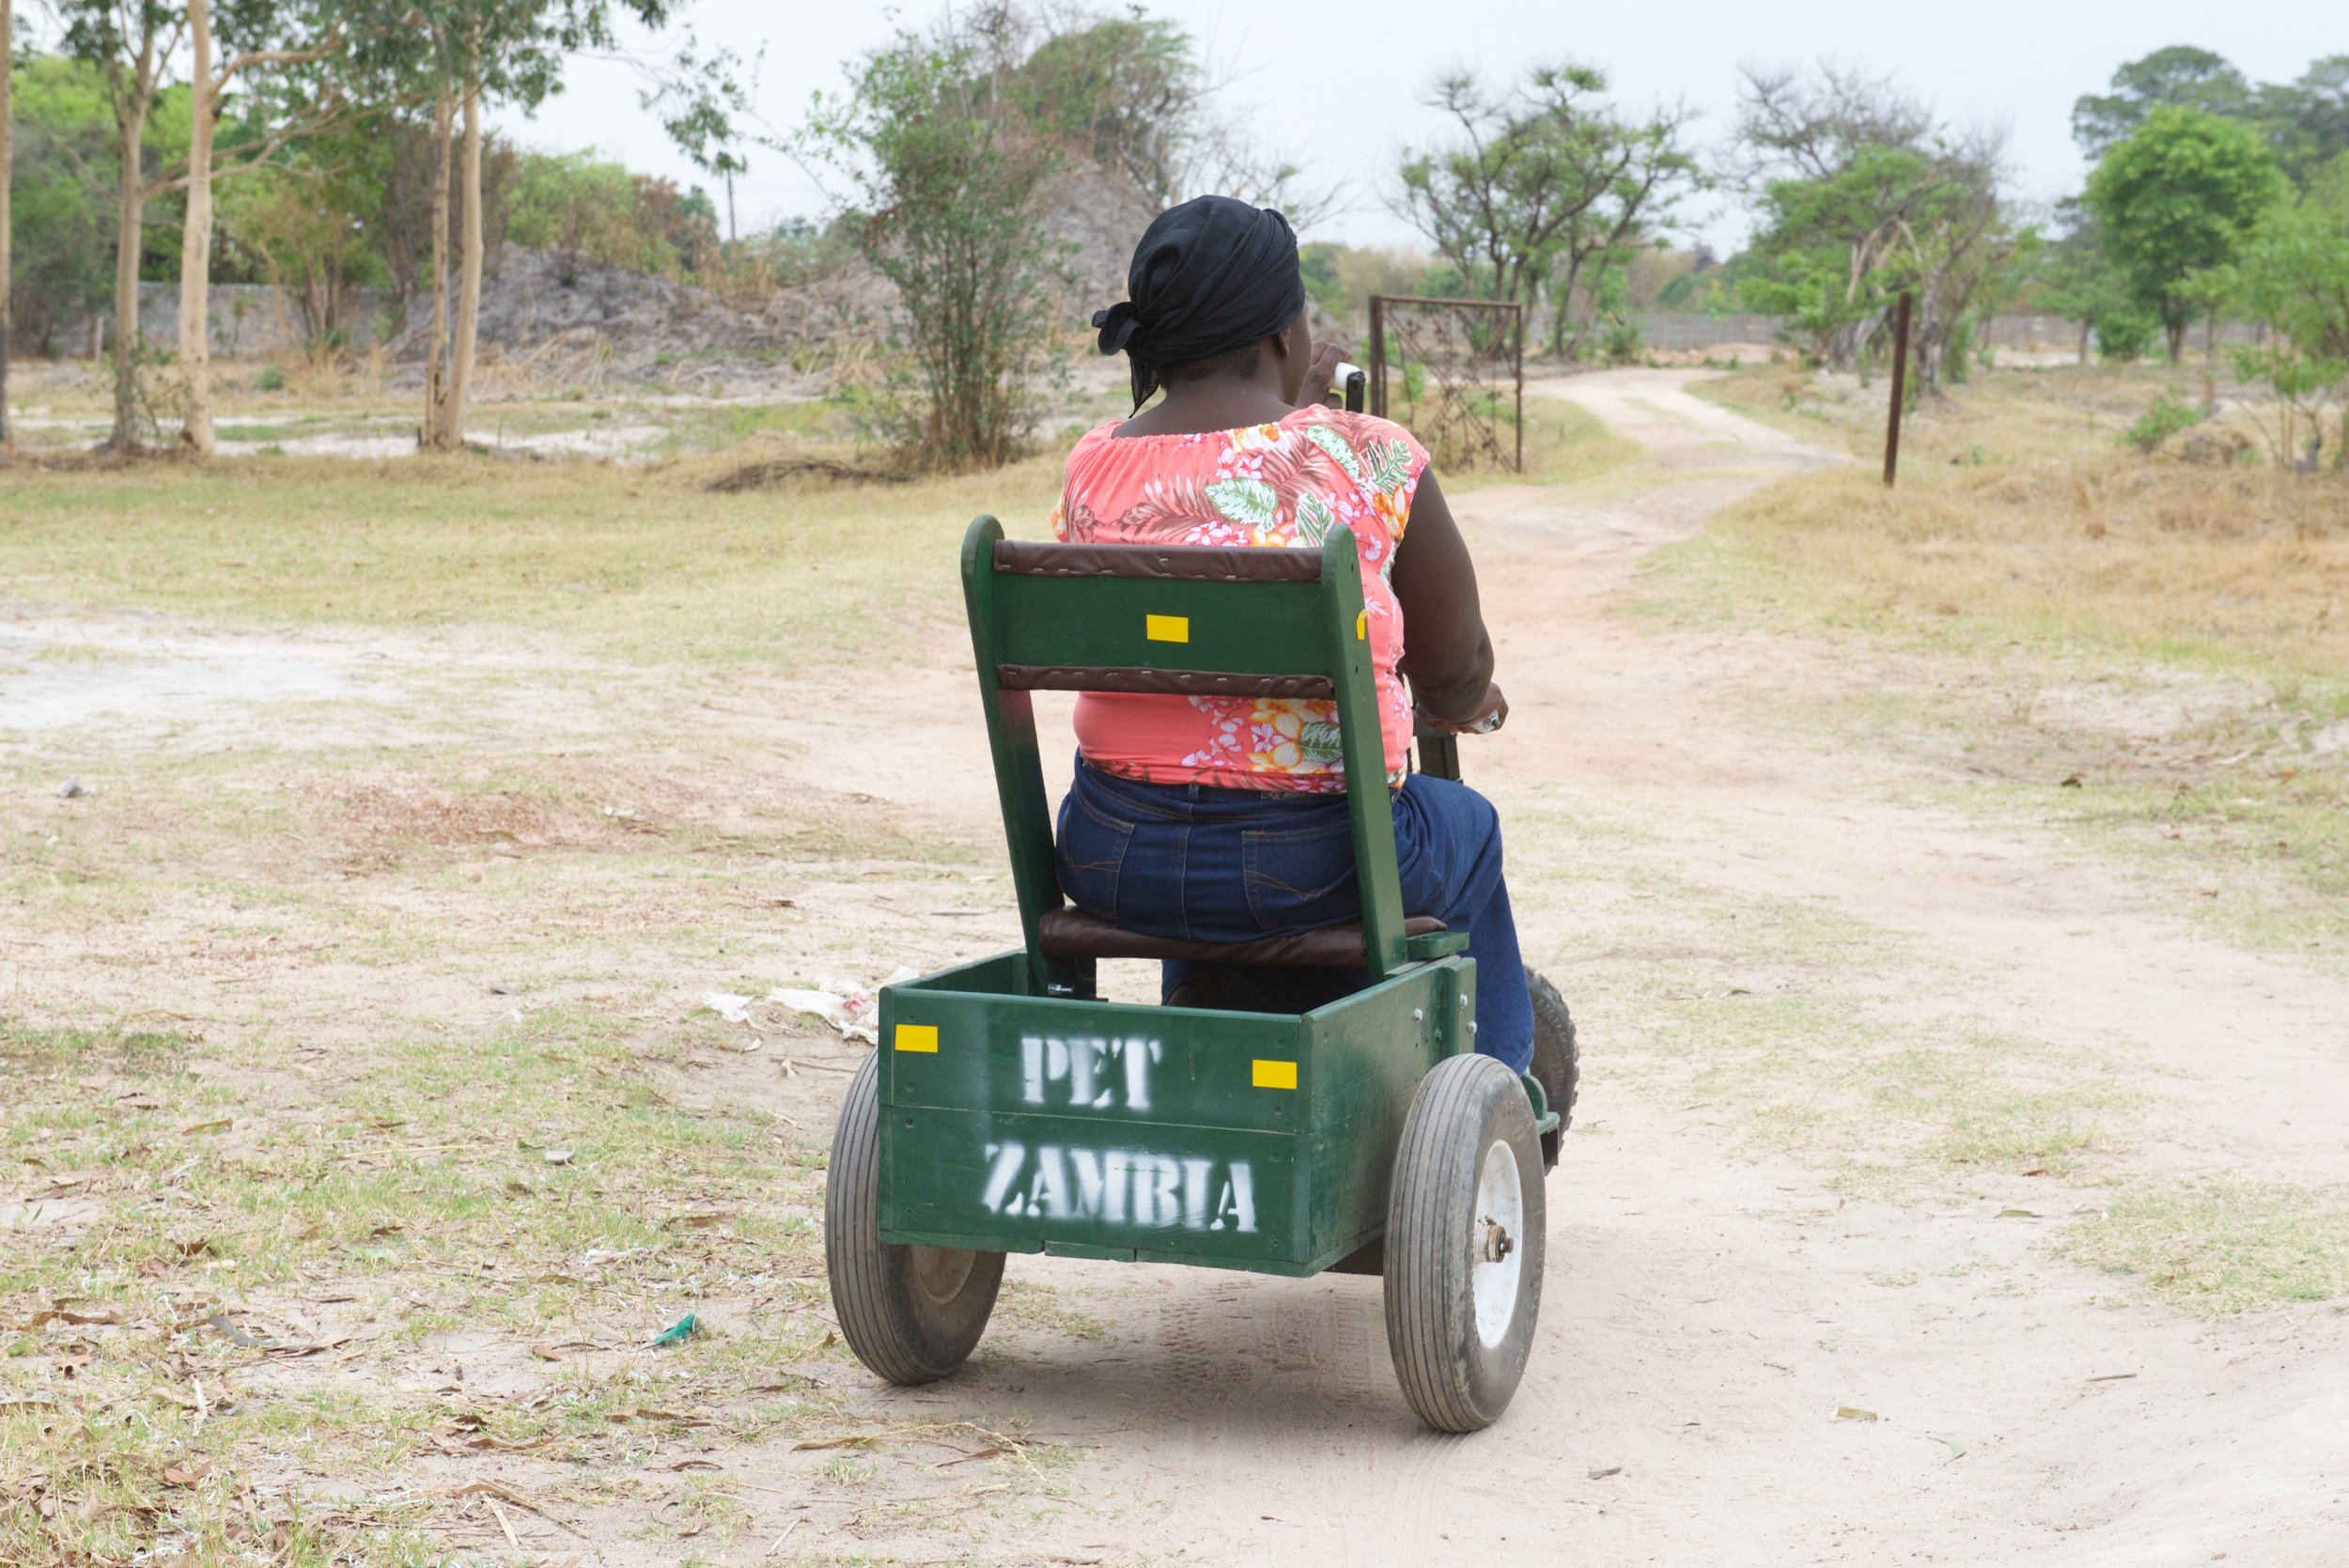 Zambia:The Gift of Mobility - A VR documentary about overcoming physical disabilities in Zambia, published by the Washington Post and featured at the Newseum in Washington, D.C.